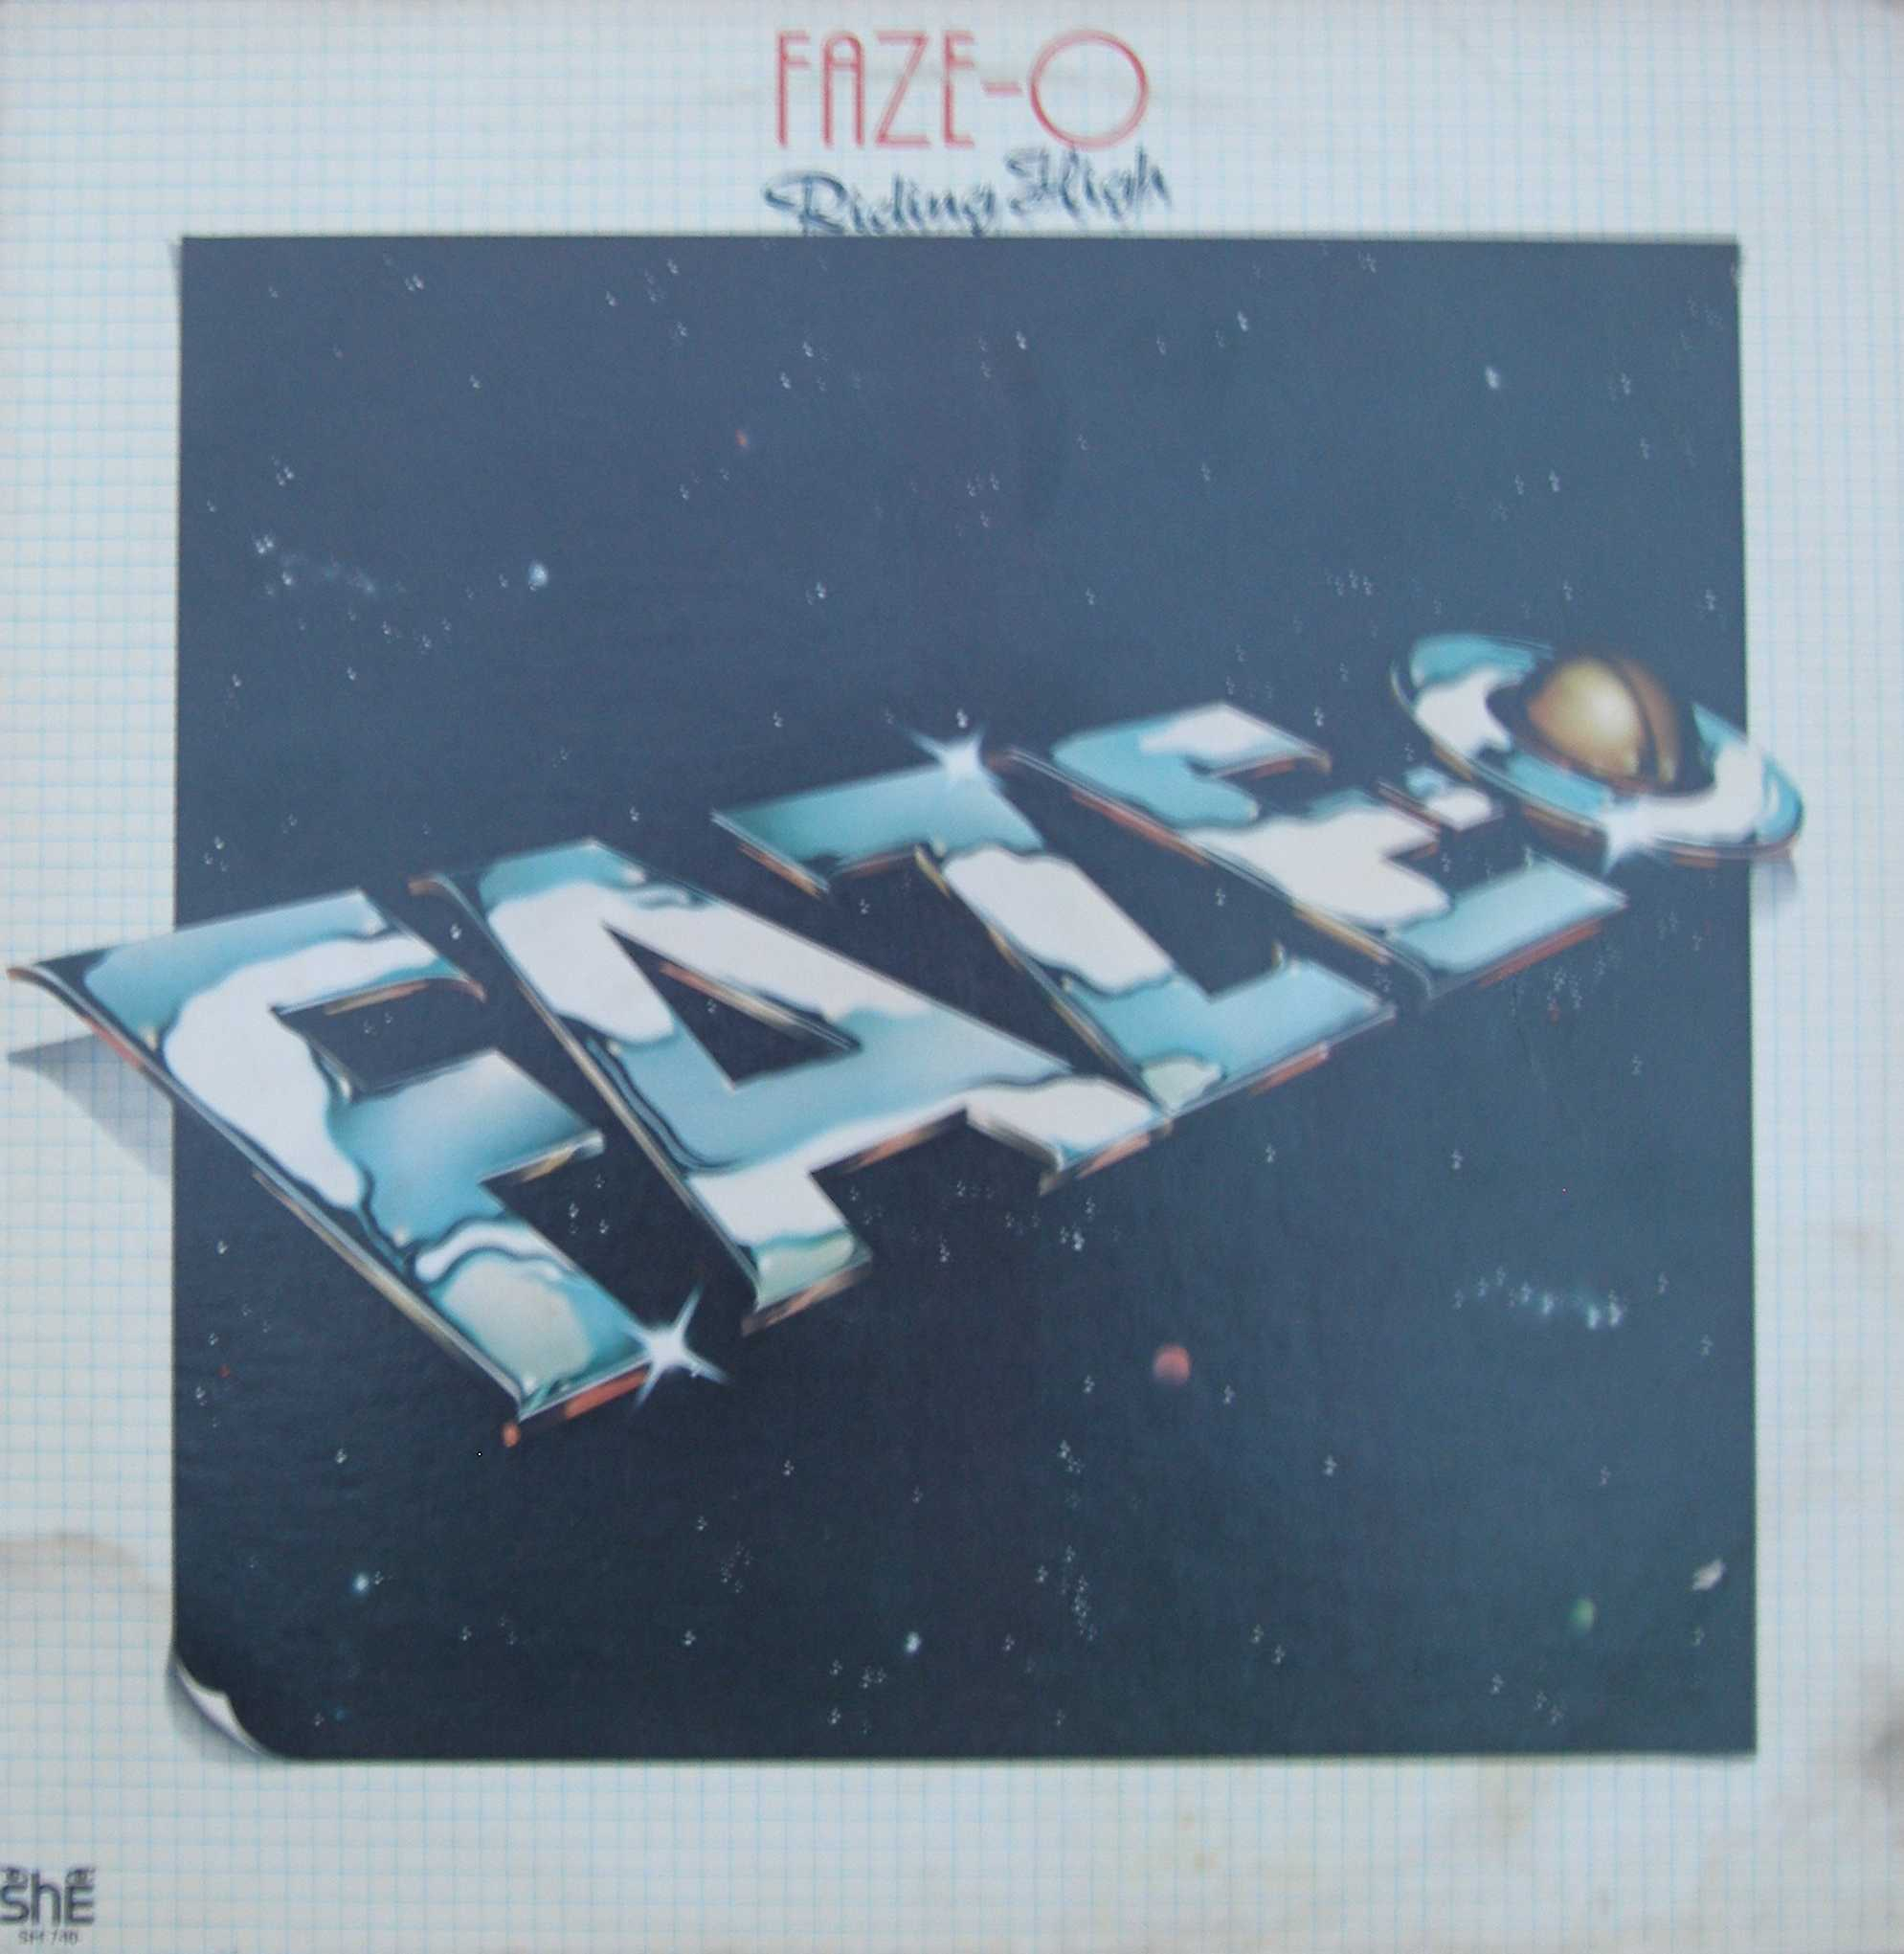 Faze o riding high for Classic house grooves dope jams nyc